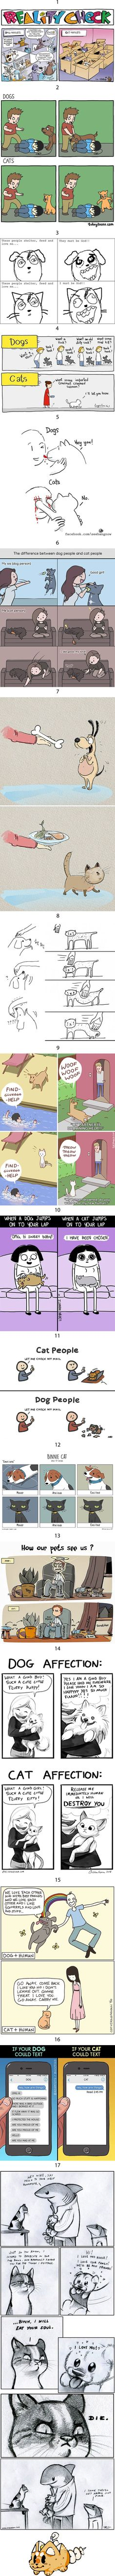 17 Comics Perfectly Describe The Differences Between Having A Cat And A Dog